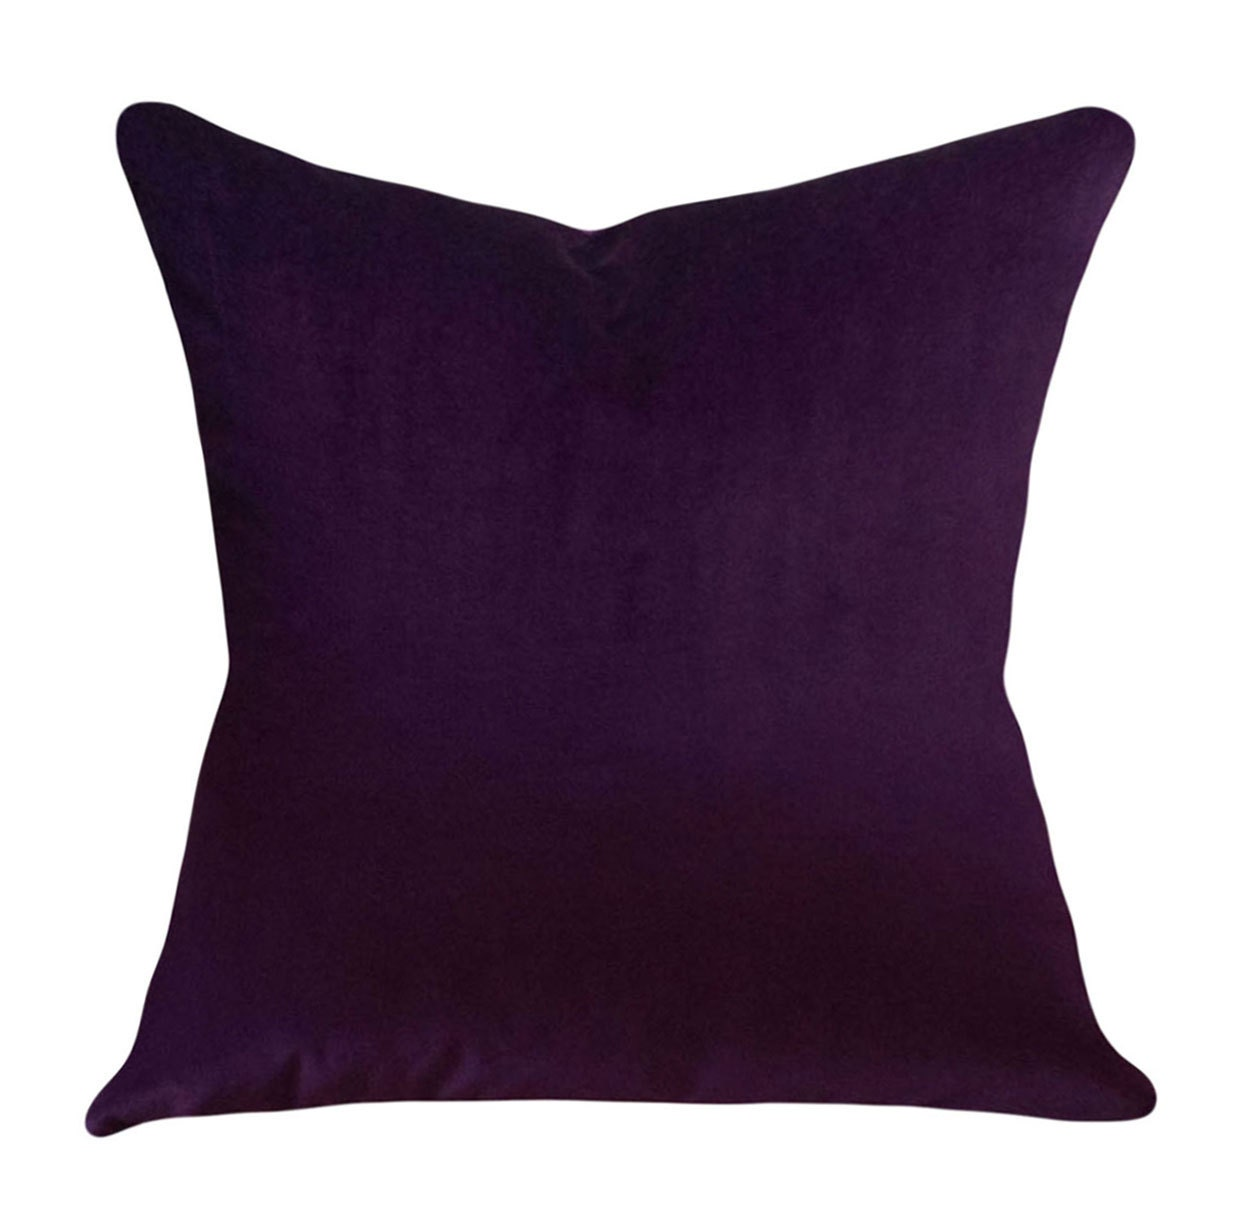 Purple Velvet Decorative Pillows : Purple Velvet Decorative Pillow Cover Throw by PillowTimeGirls